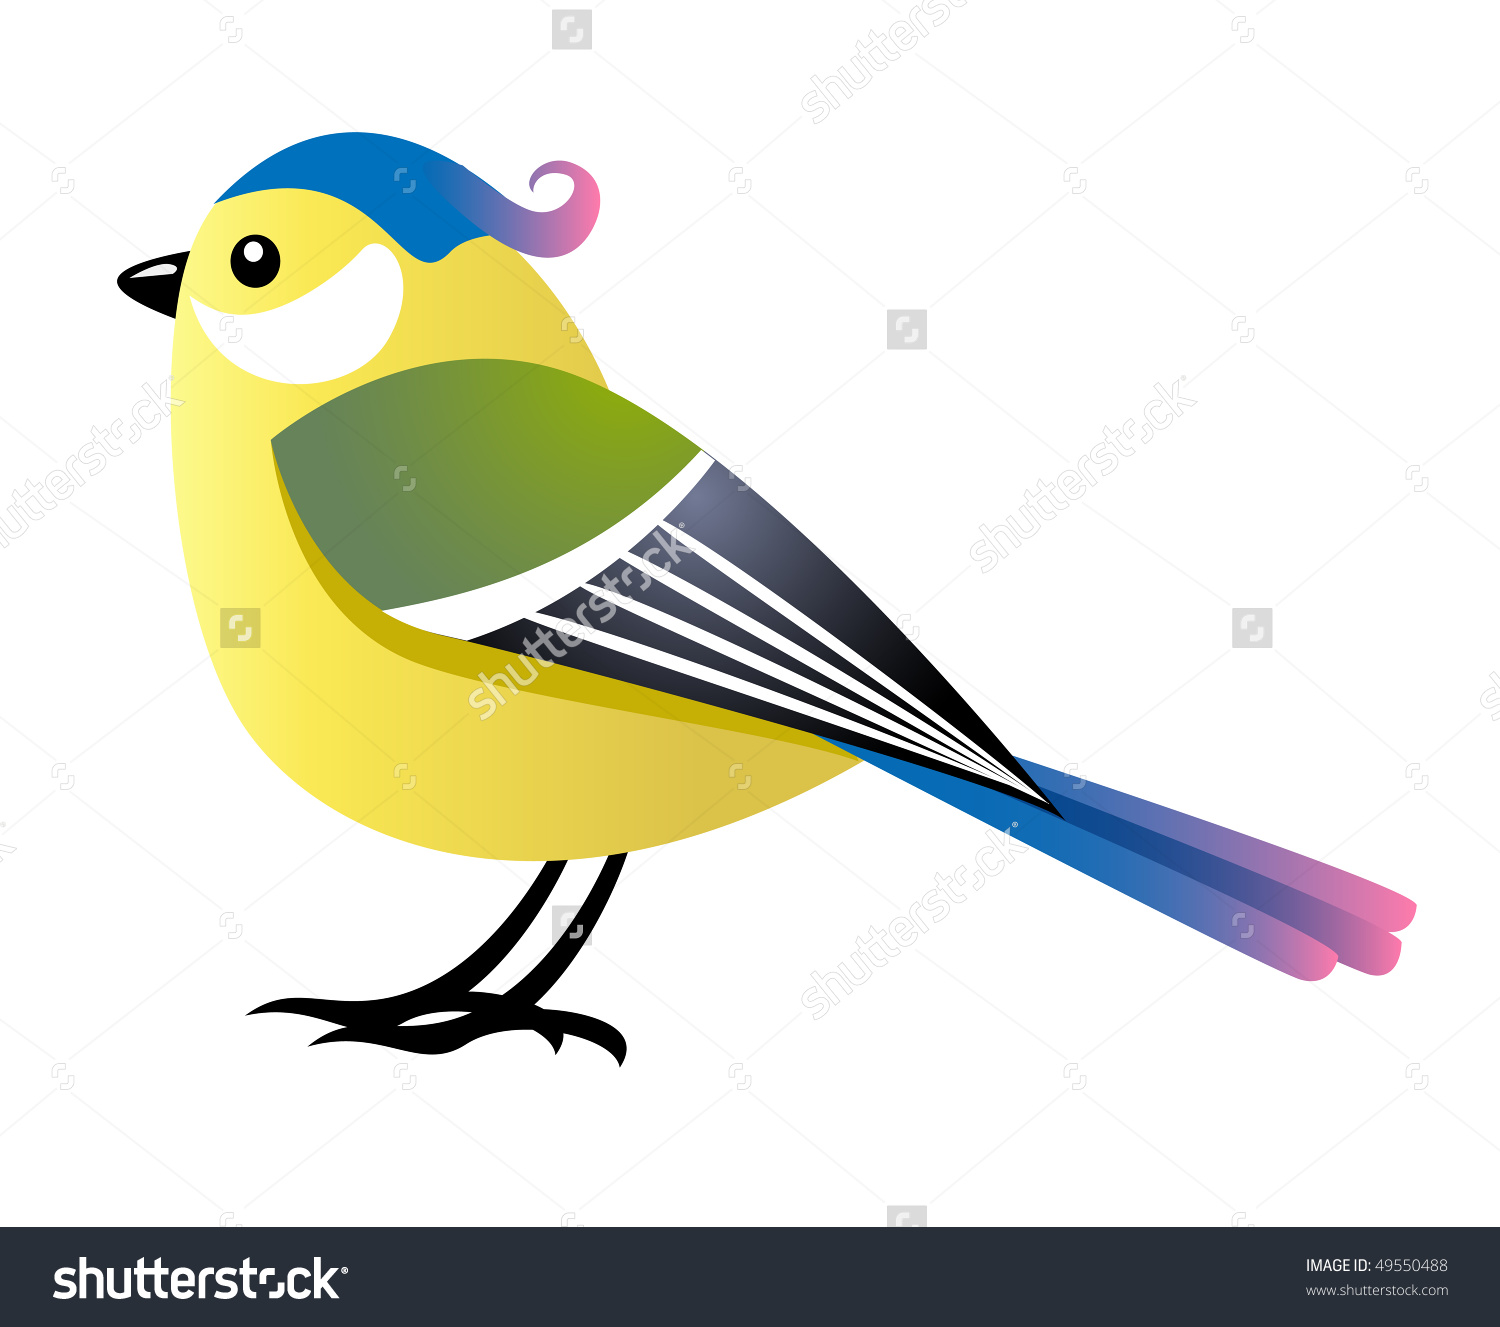 Blue Tit clipart #1, Download drawings